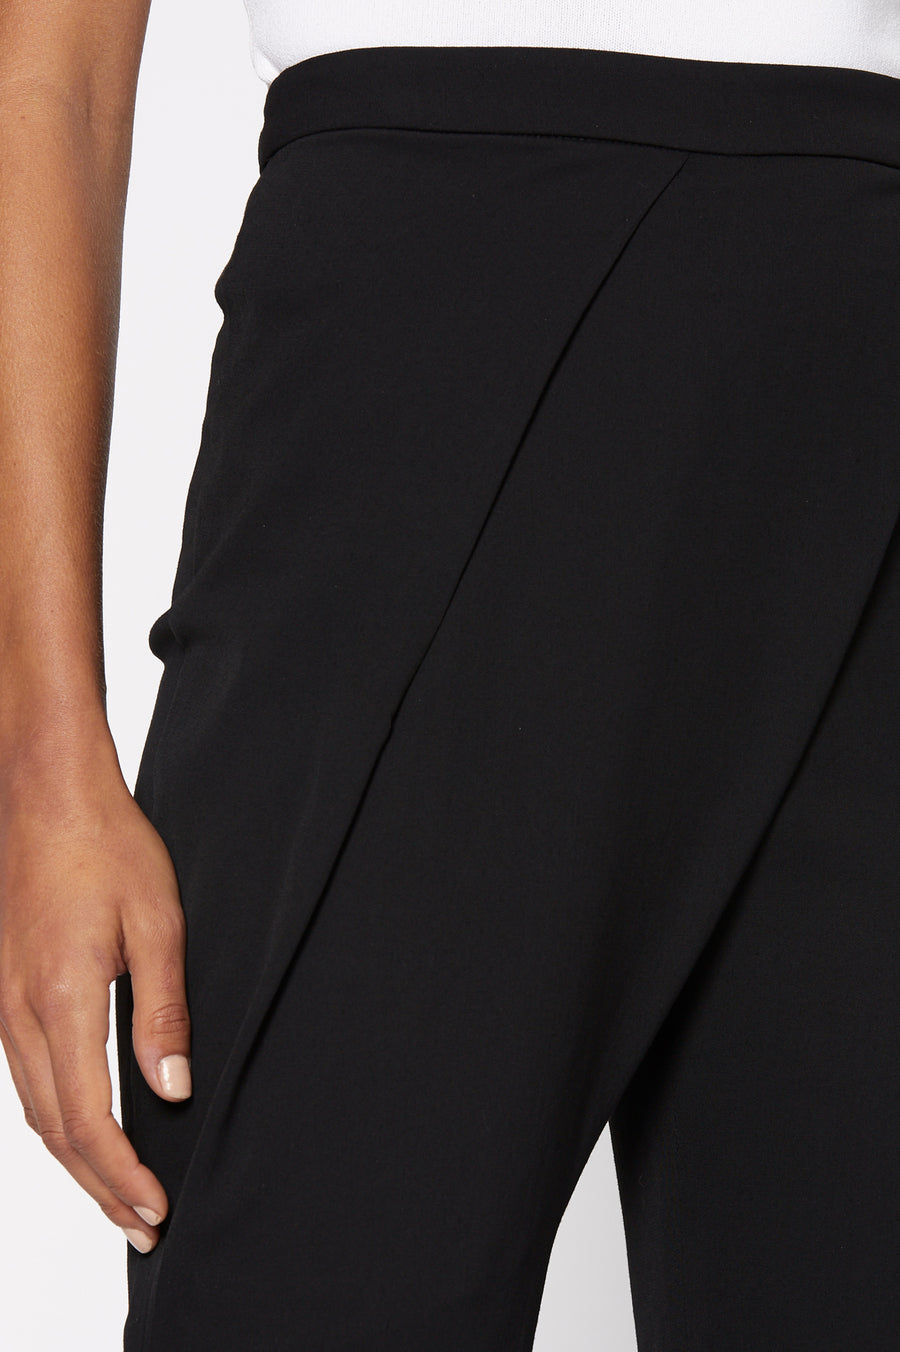 Drape Front Trouser, tailored trouser, sits high on the waist, slim-leg silhouette, hits just above the ankle, color Black